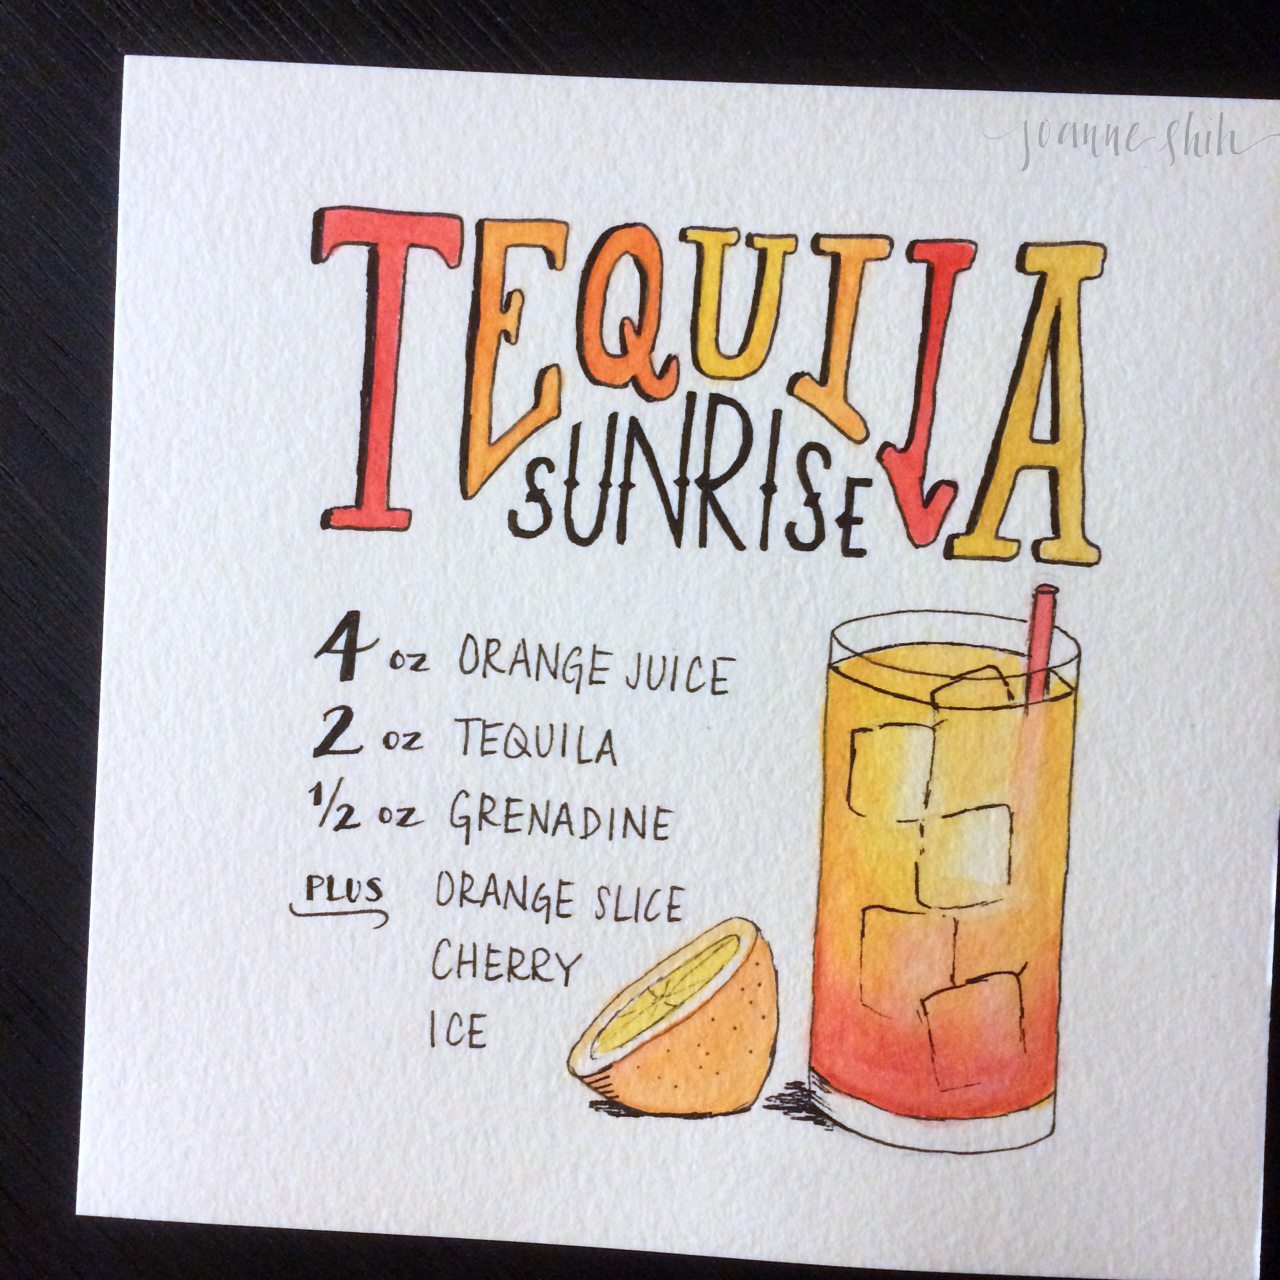 day-172-tequila-sunrise.jpg